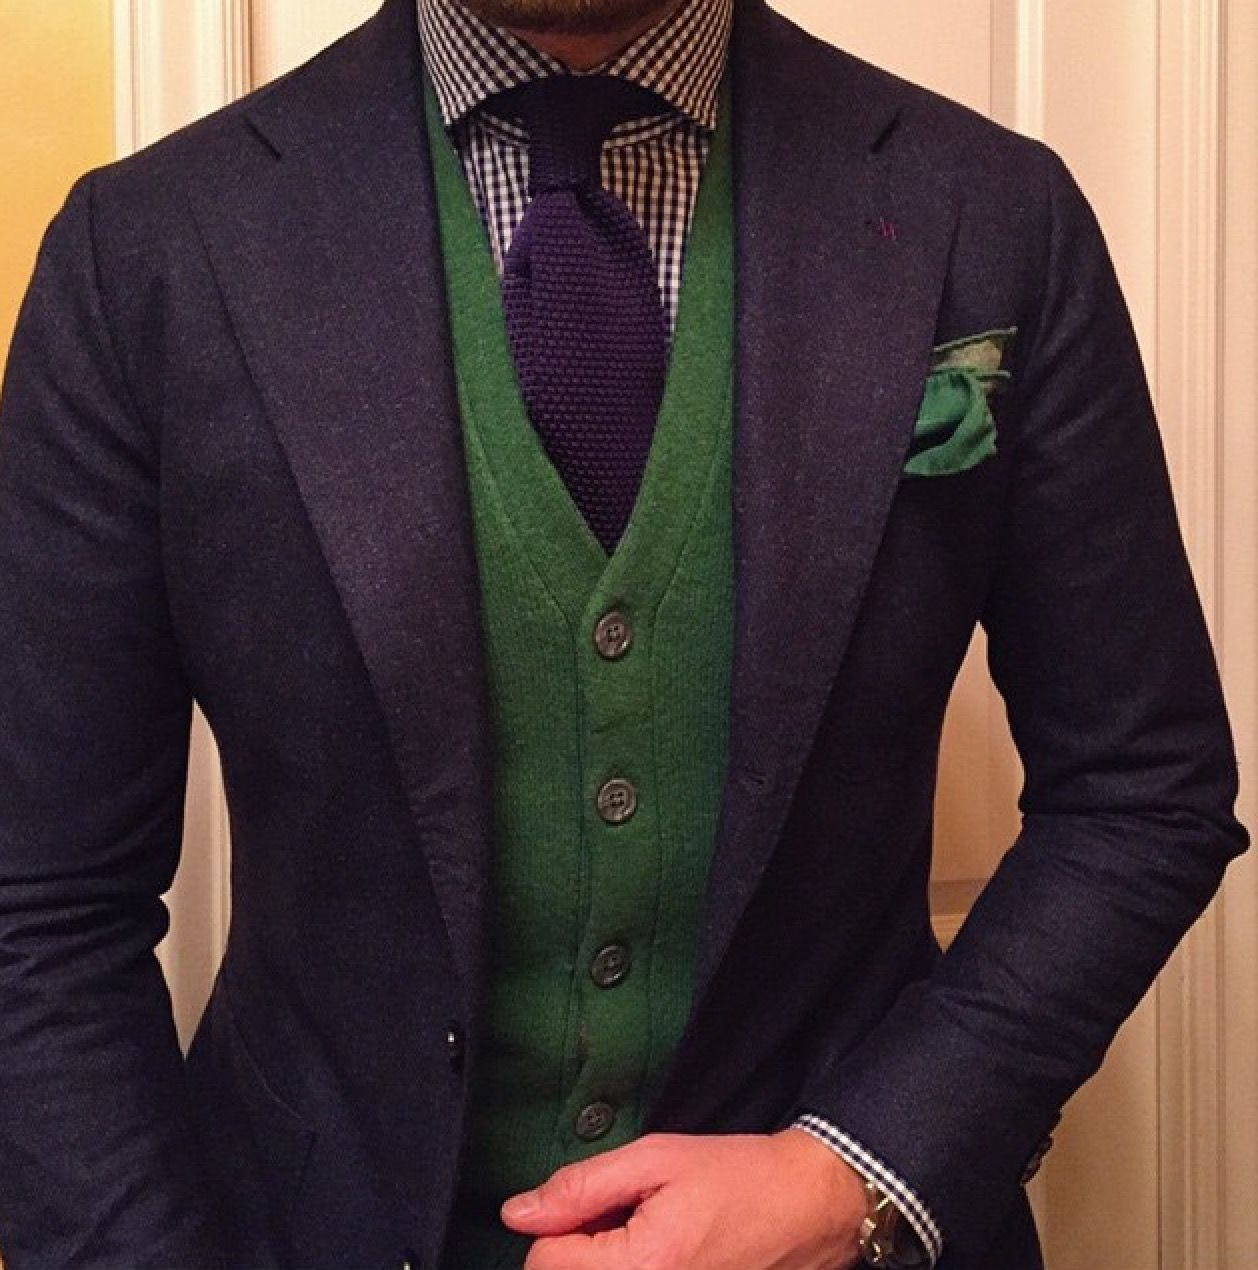 Green + Blue Combo. Navy jacket with green vest, navy knitted tie, green